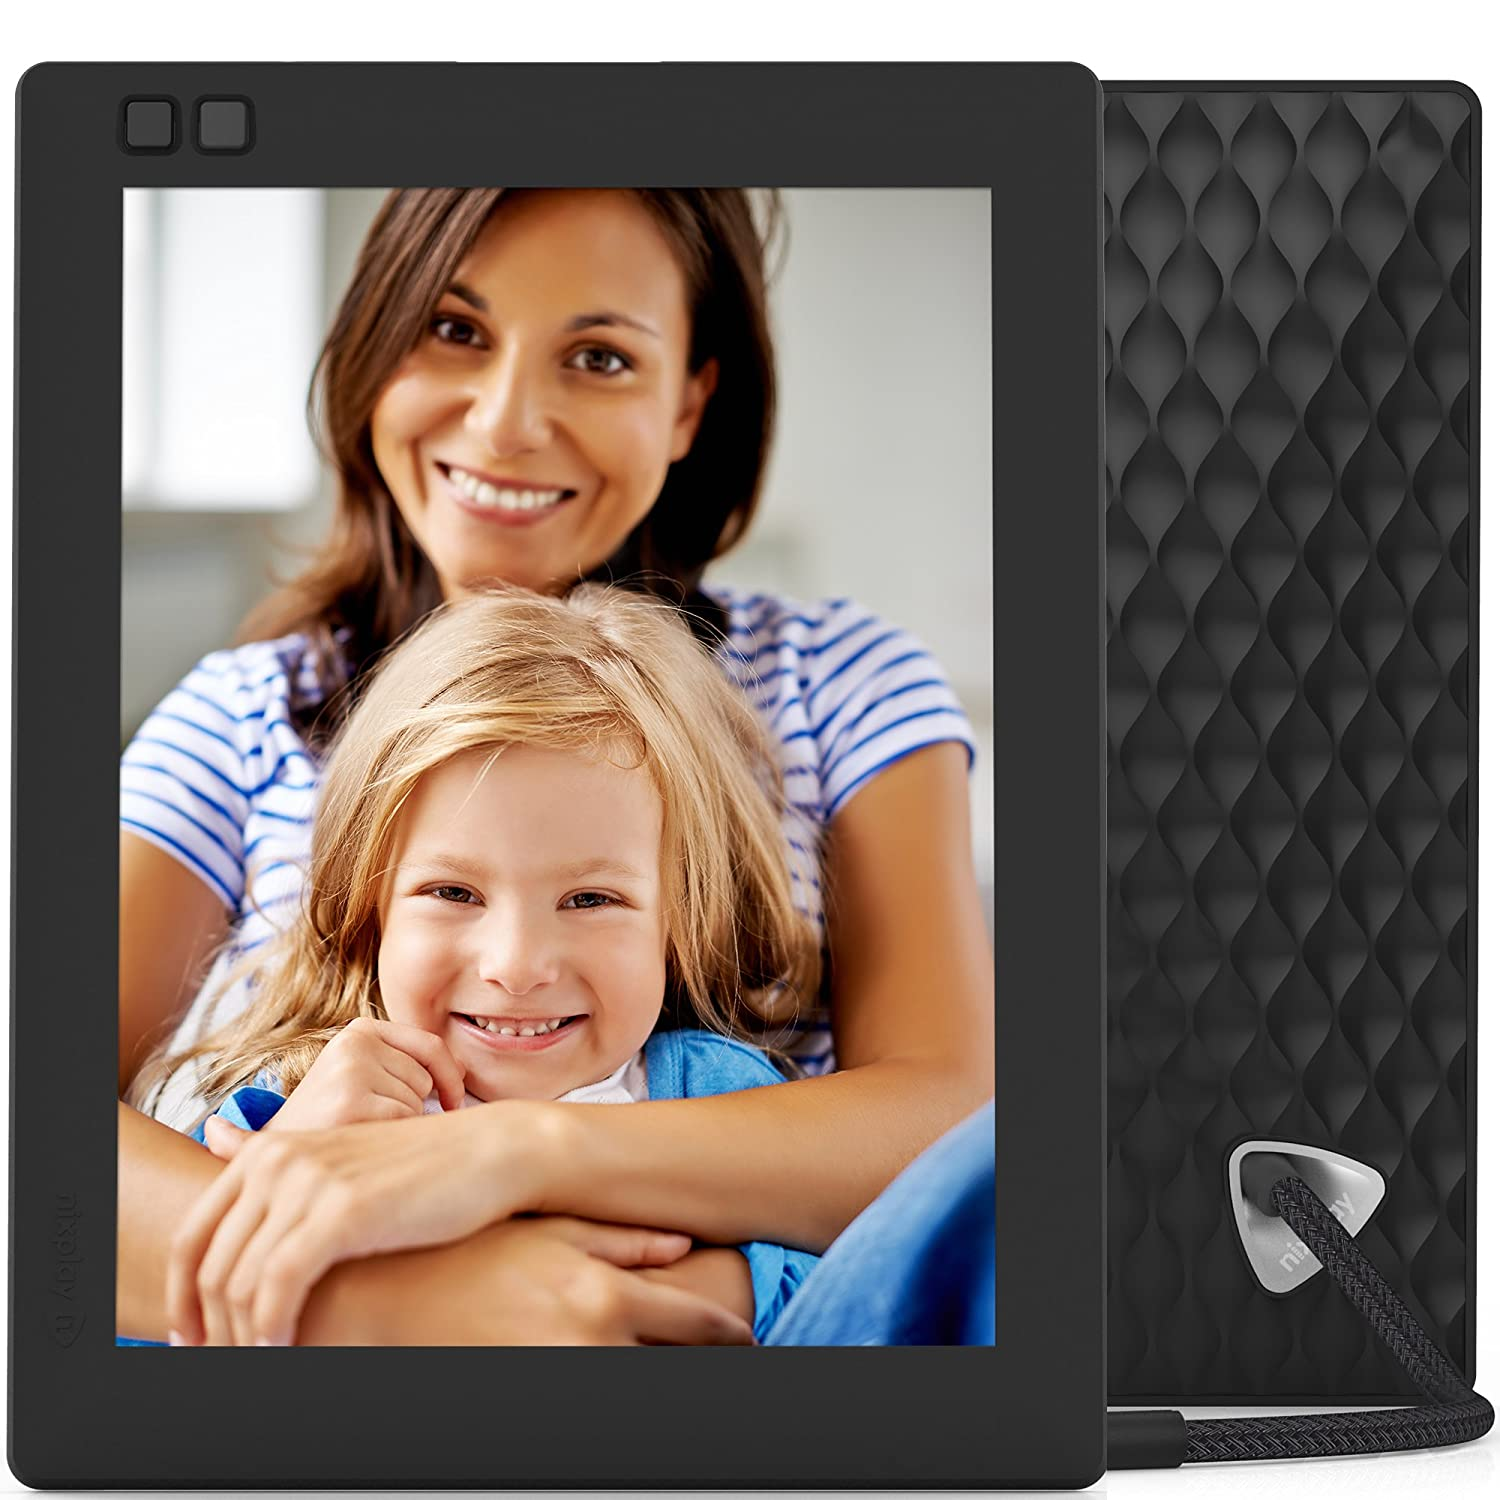 Top 10 Best WiFi Digital Photo Picture Frame 2016-2017